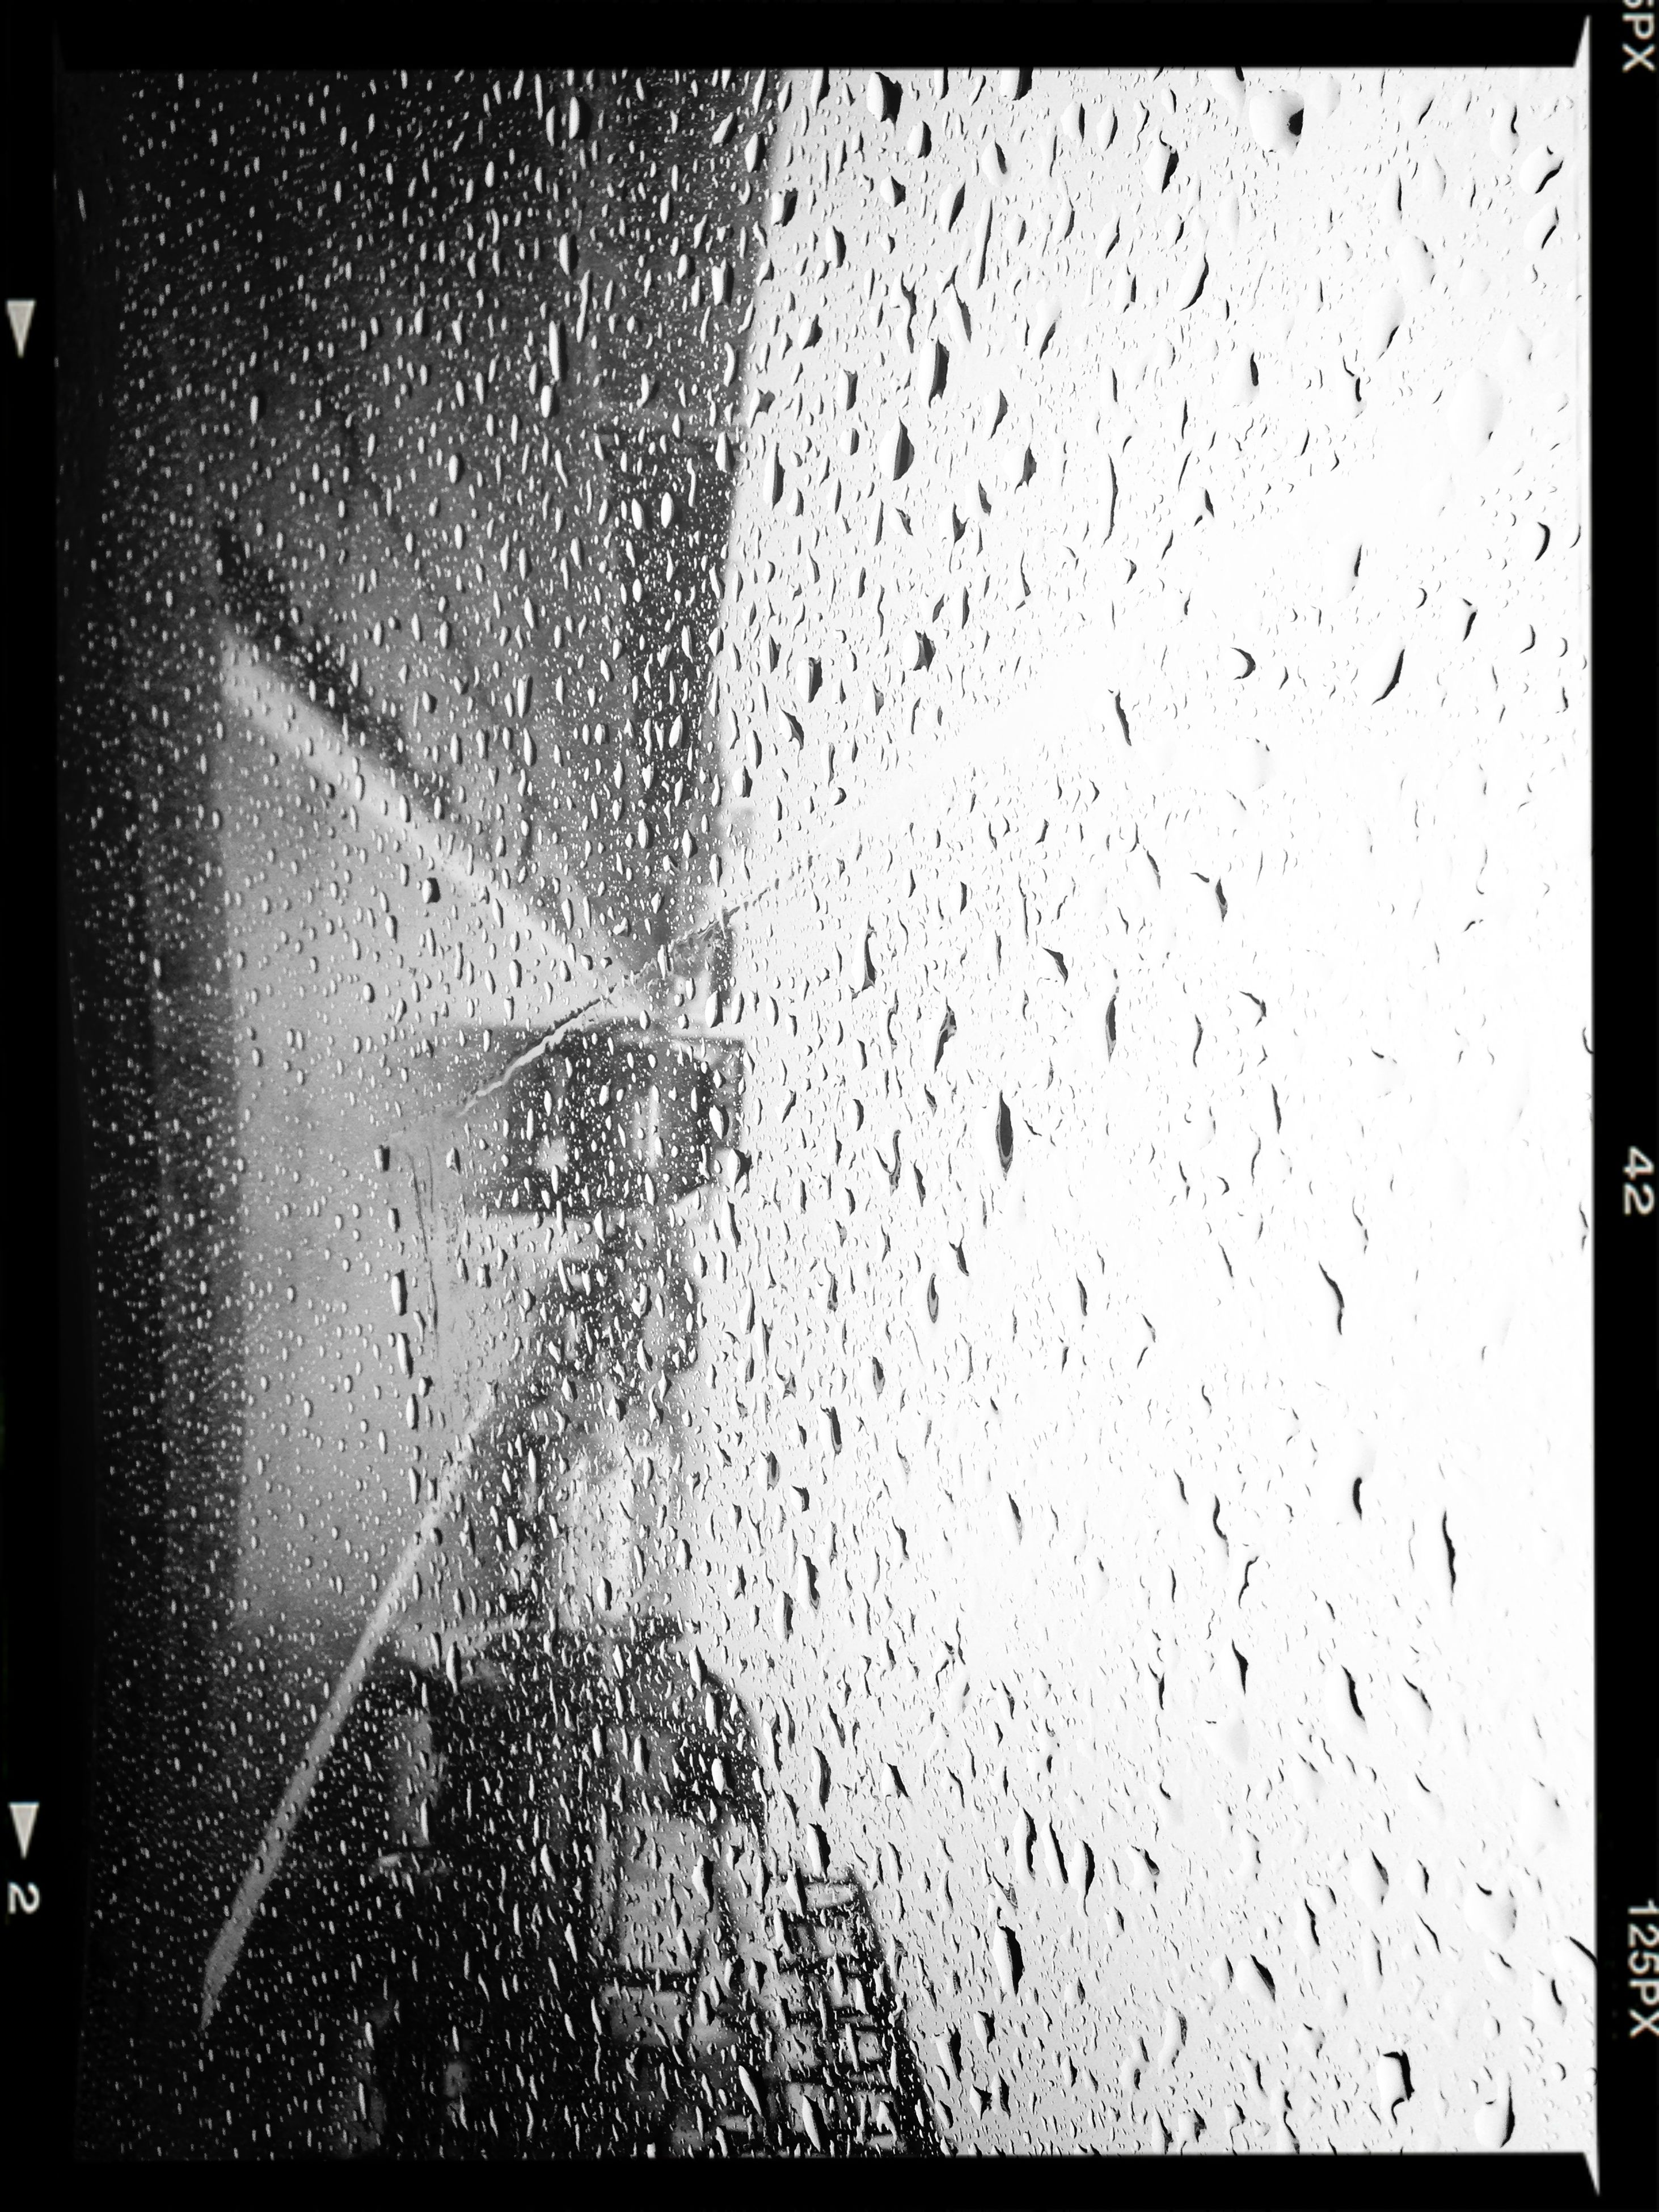 transfer print, window, drop, wet, indoors, rain, glass - material, transparent, auto post production filter, water, full frame, raindrop, backgrounds, focus on foreground, glass, silhouette, close-up, weather, one person, day